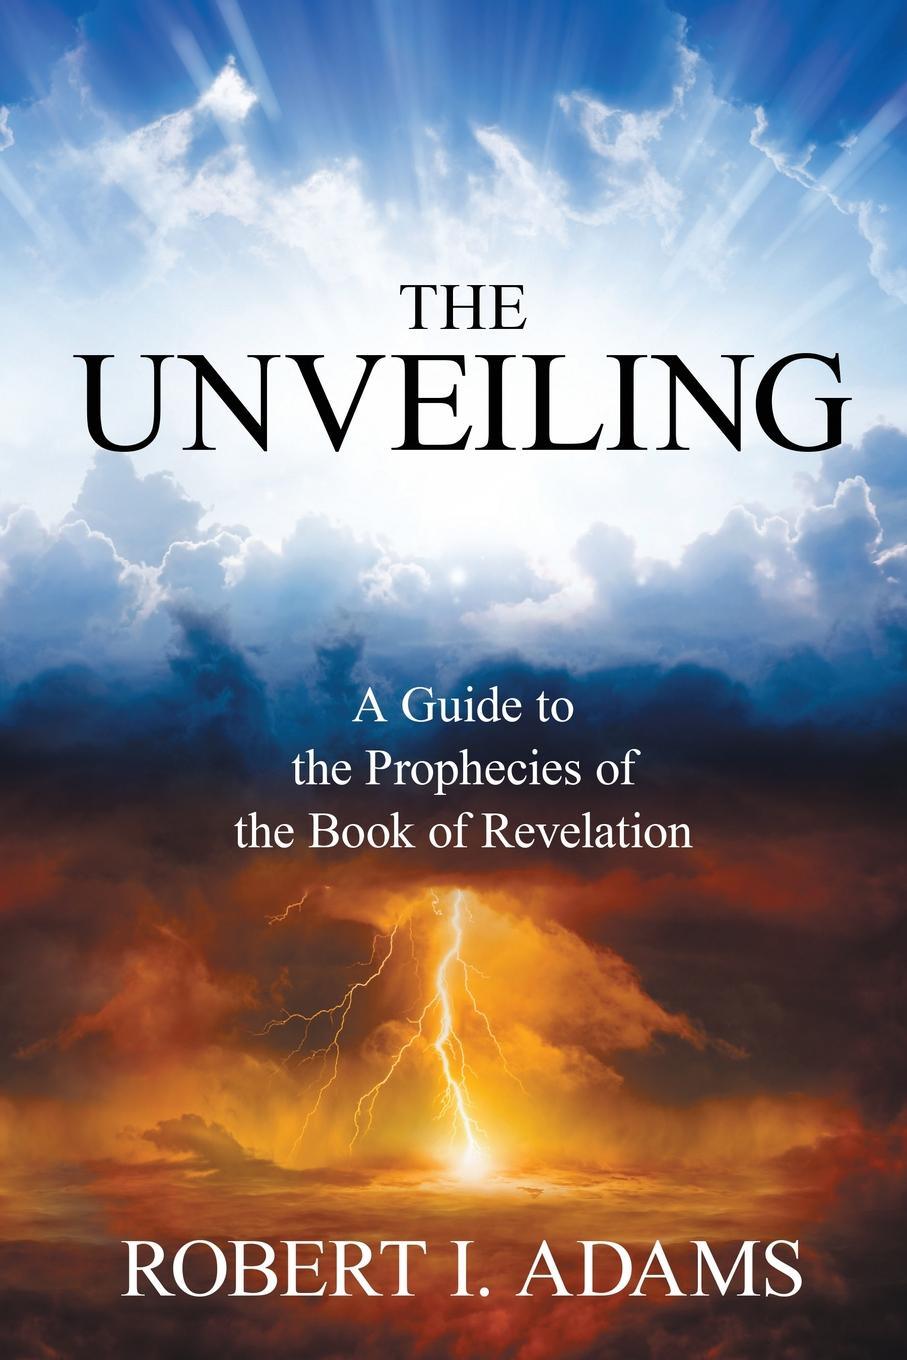 Robert I. Adams THE UNVEILING - A Guide to The Prophecies of The Book of Revelation mack smalley jr the crown the church the first the last revelation a study guide